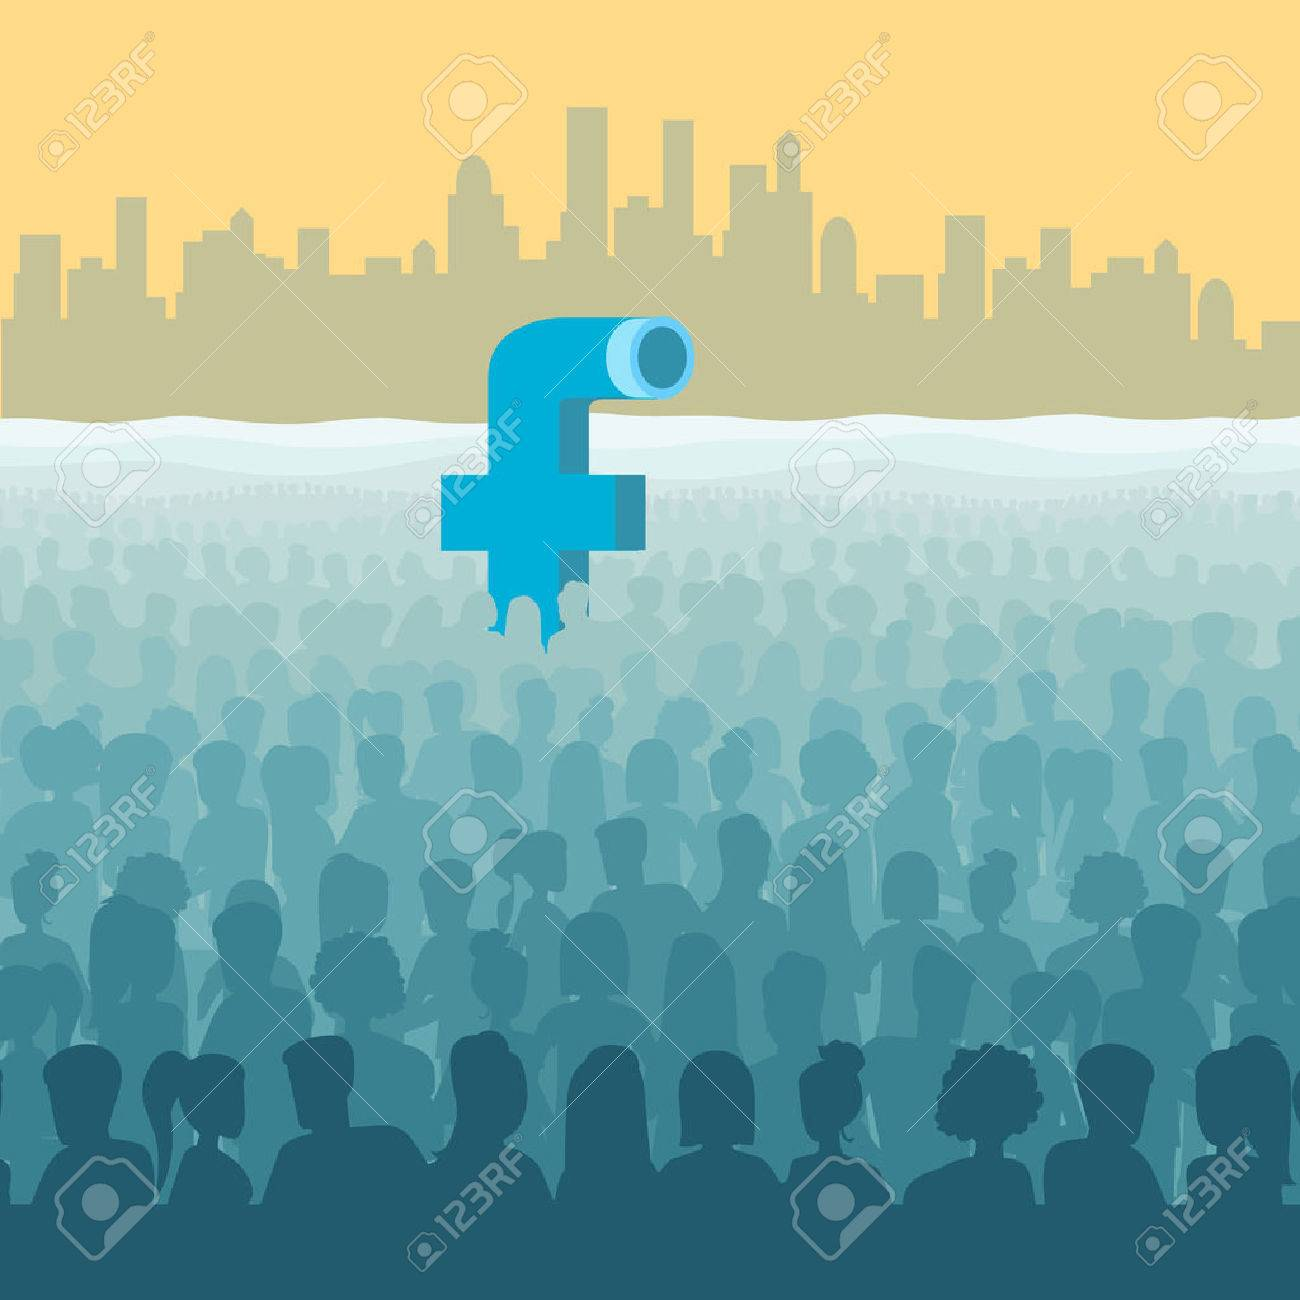 Flat isometric Facebook look like submarine periscope in ocean of human silhouettes, cityscape background vector illustration. 3d isometry Social Network, Marketing concept. Stock Vector - 64111029